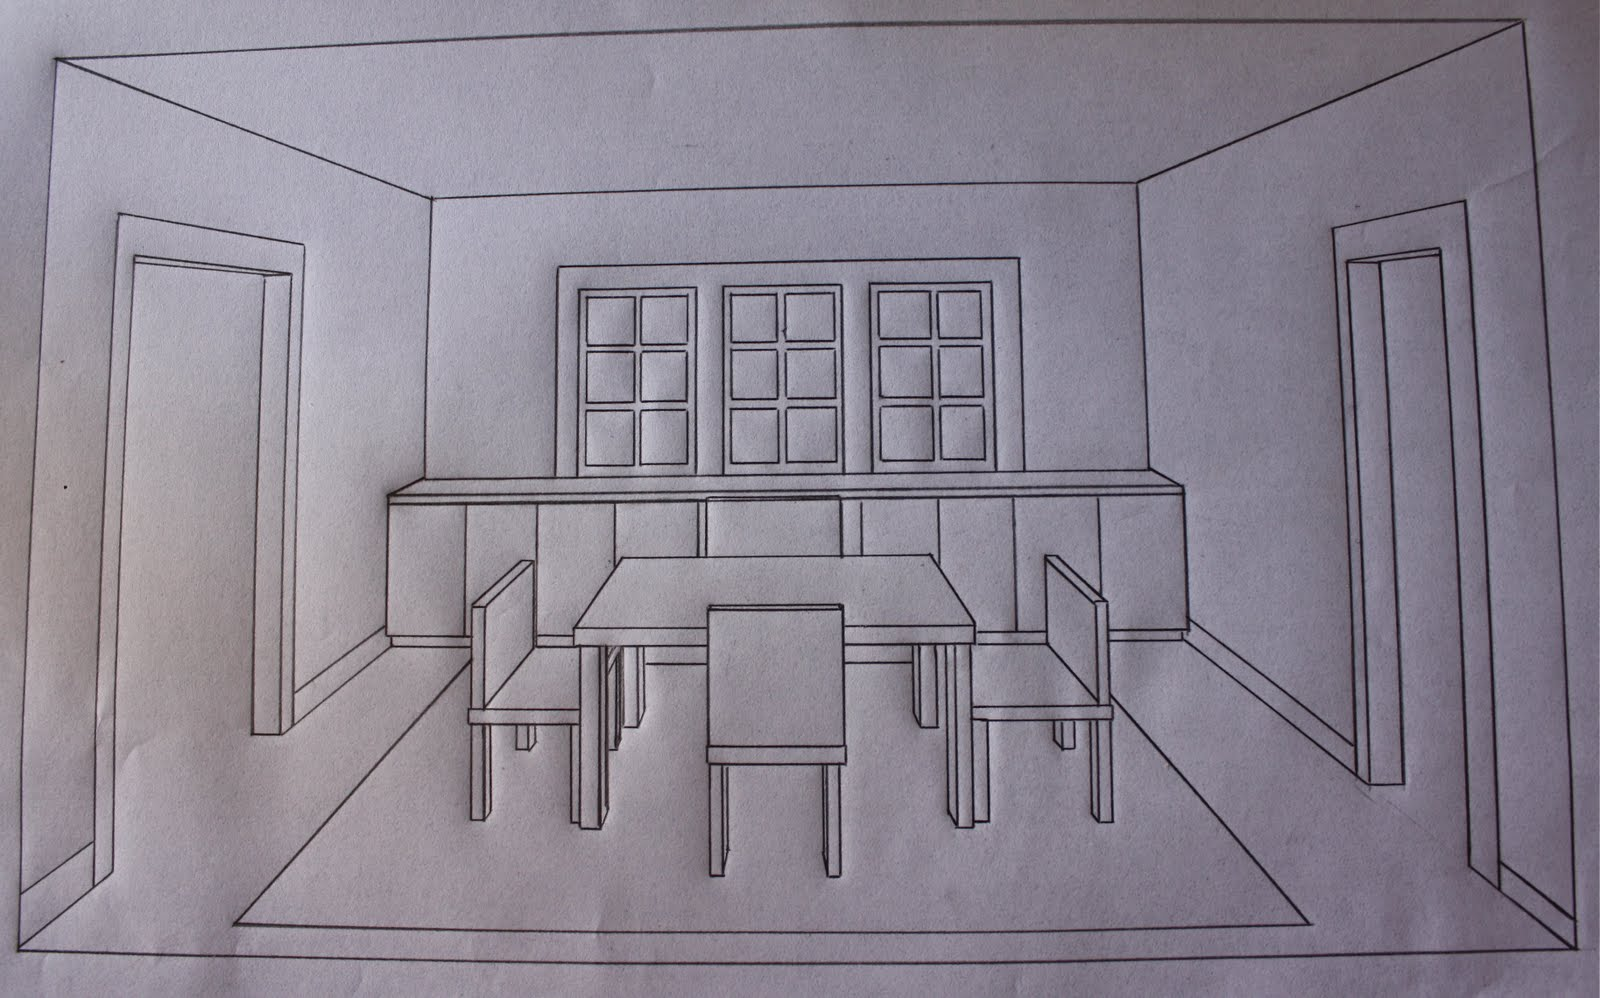 One Point Perspective Room Drawing At Getdrawings Com